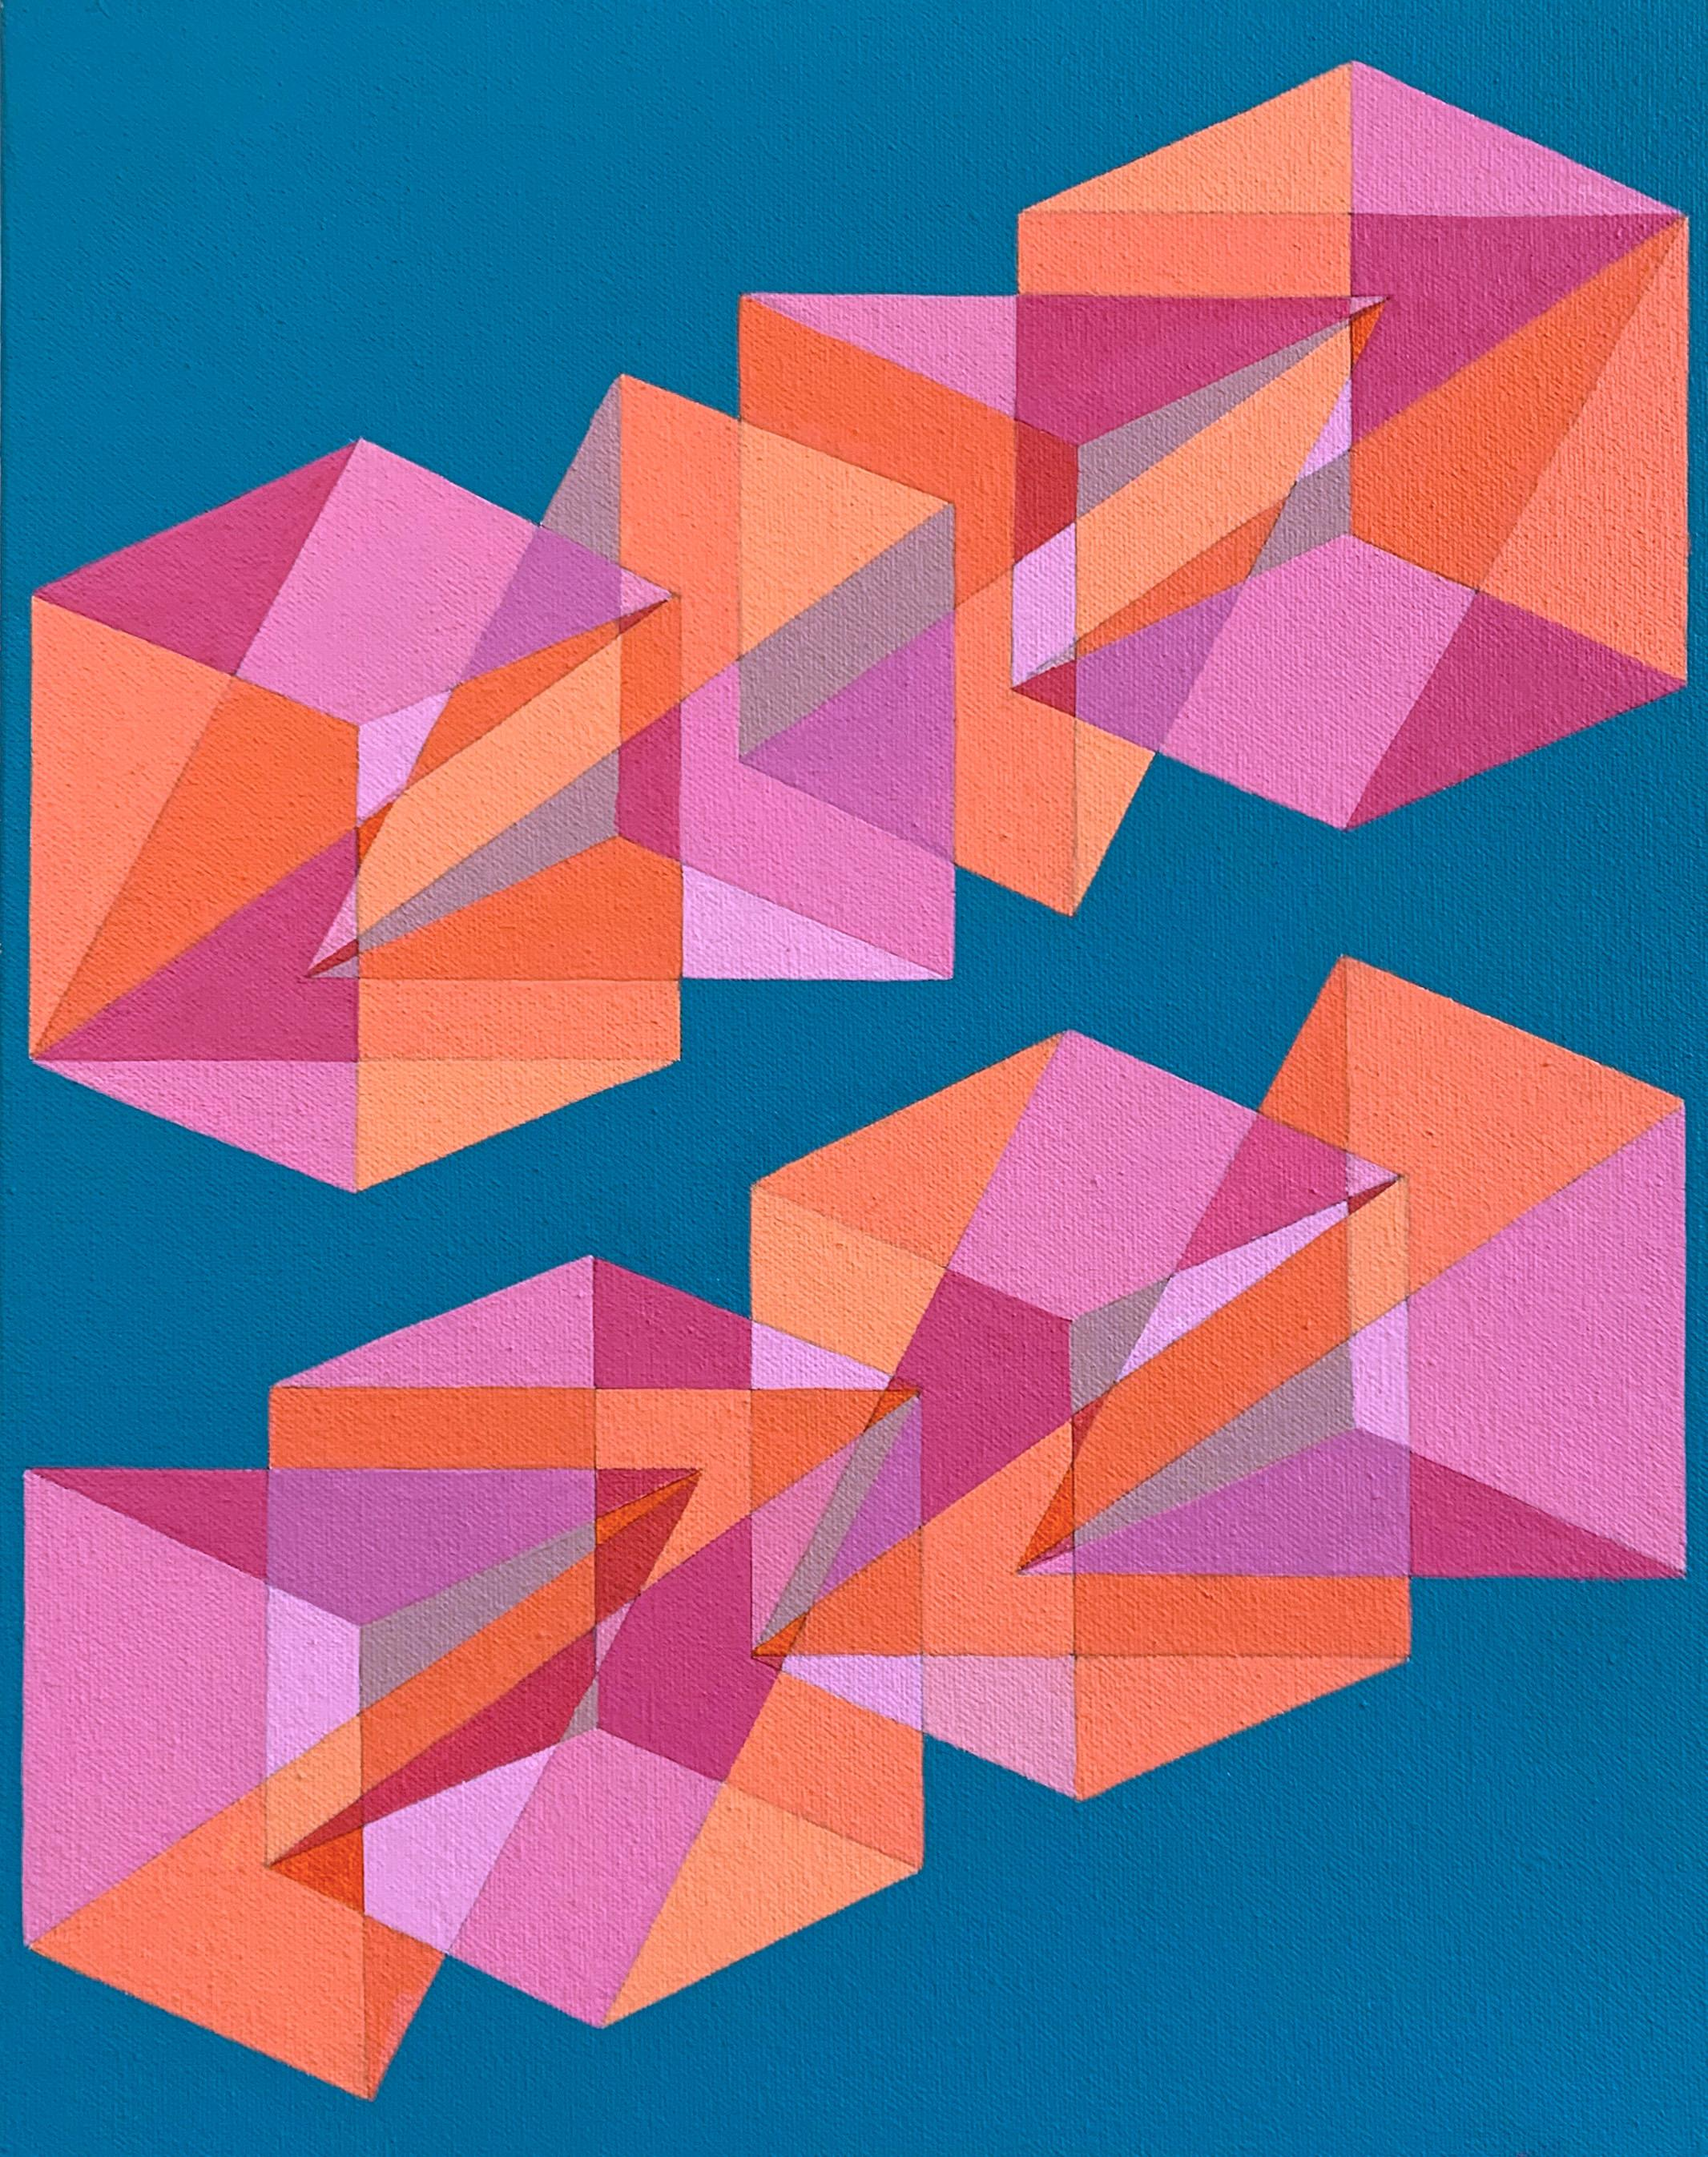 Contemporary abstract geometric painting w/ orange, pink & blue cubes & pyramids